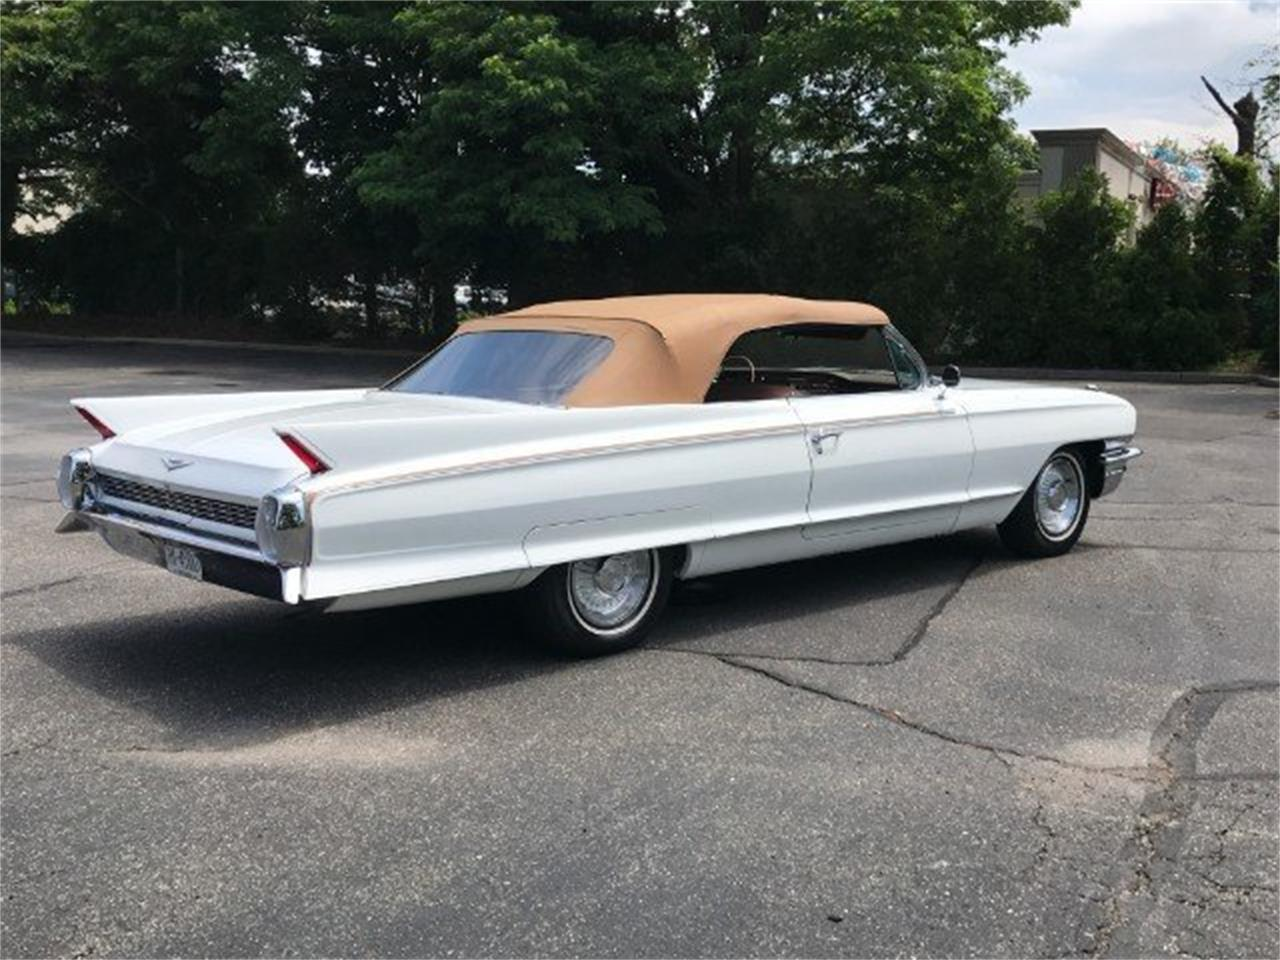 Large Picture of Classic 1962 Cadillac Eldorado located in New York - $29,500.00 - LDHM